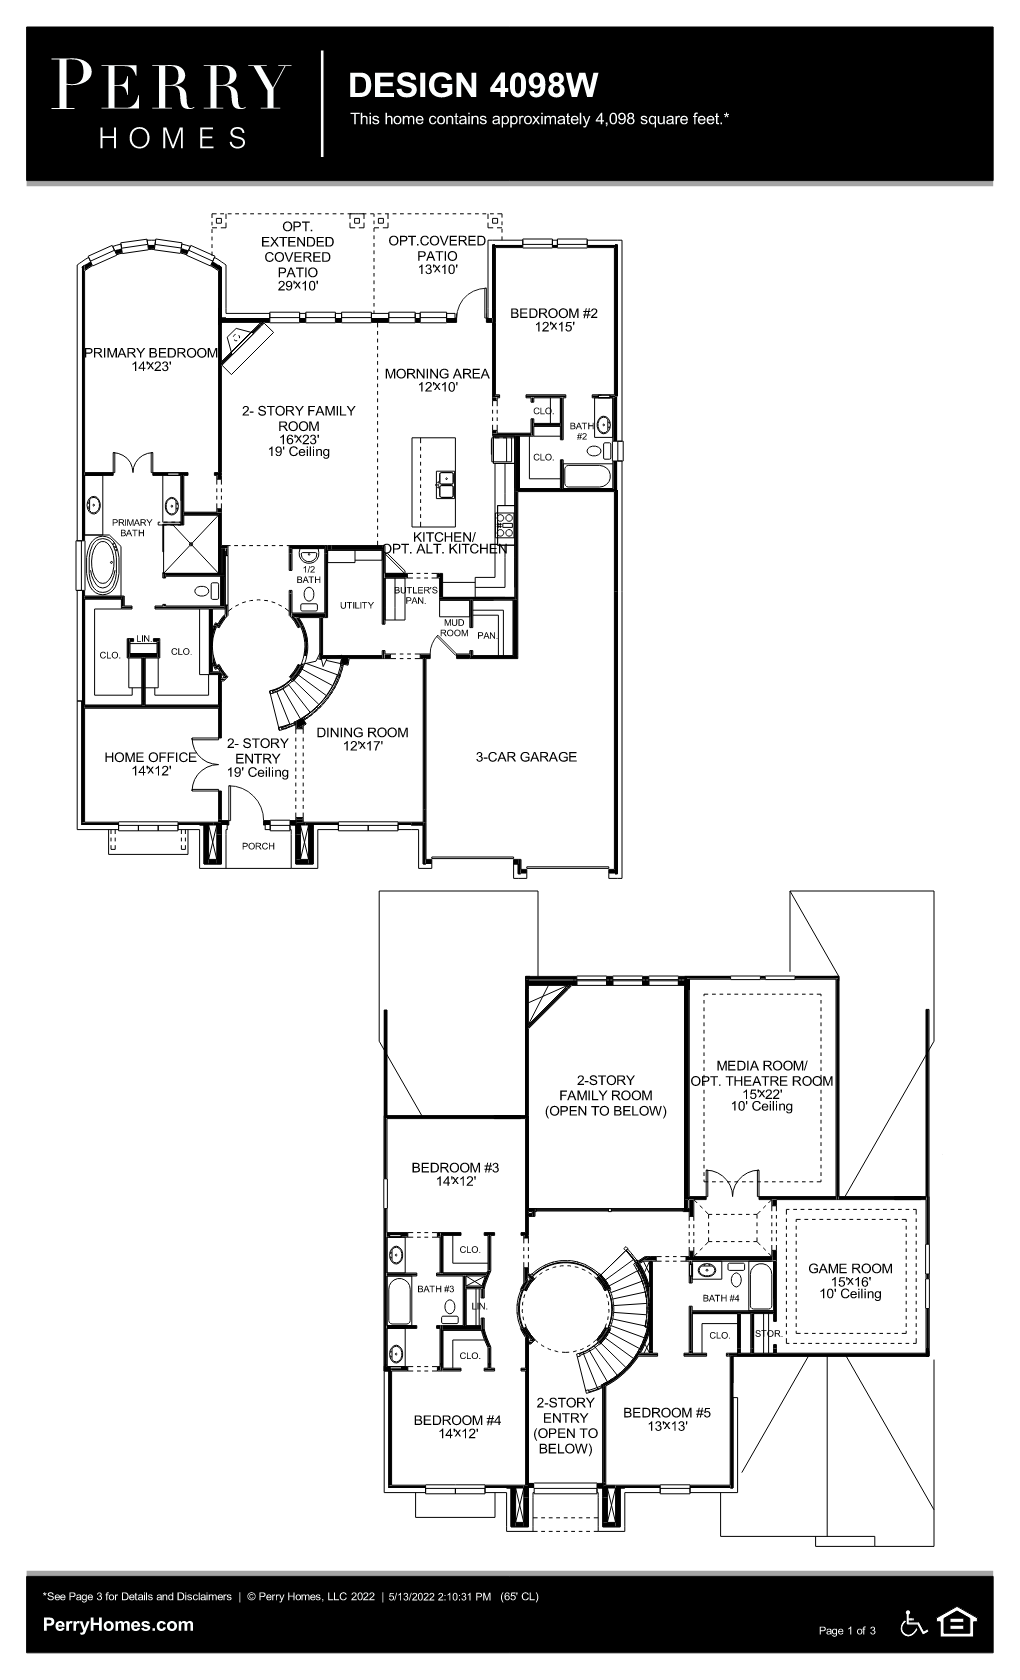 Floor Plan for 4098W